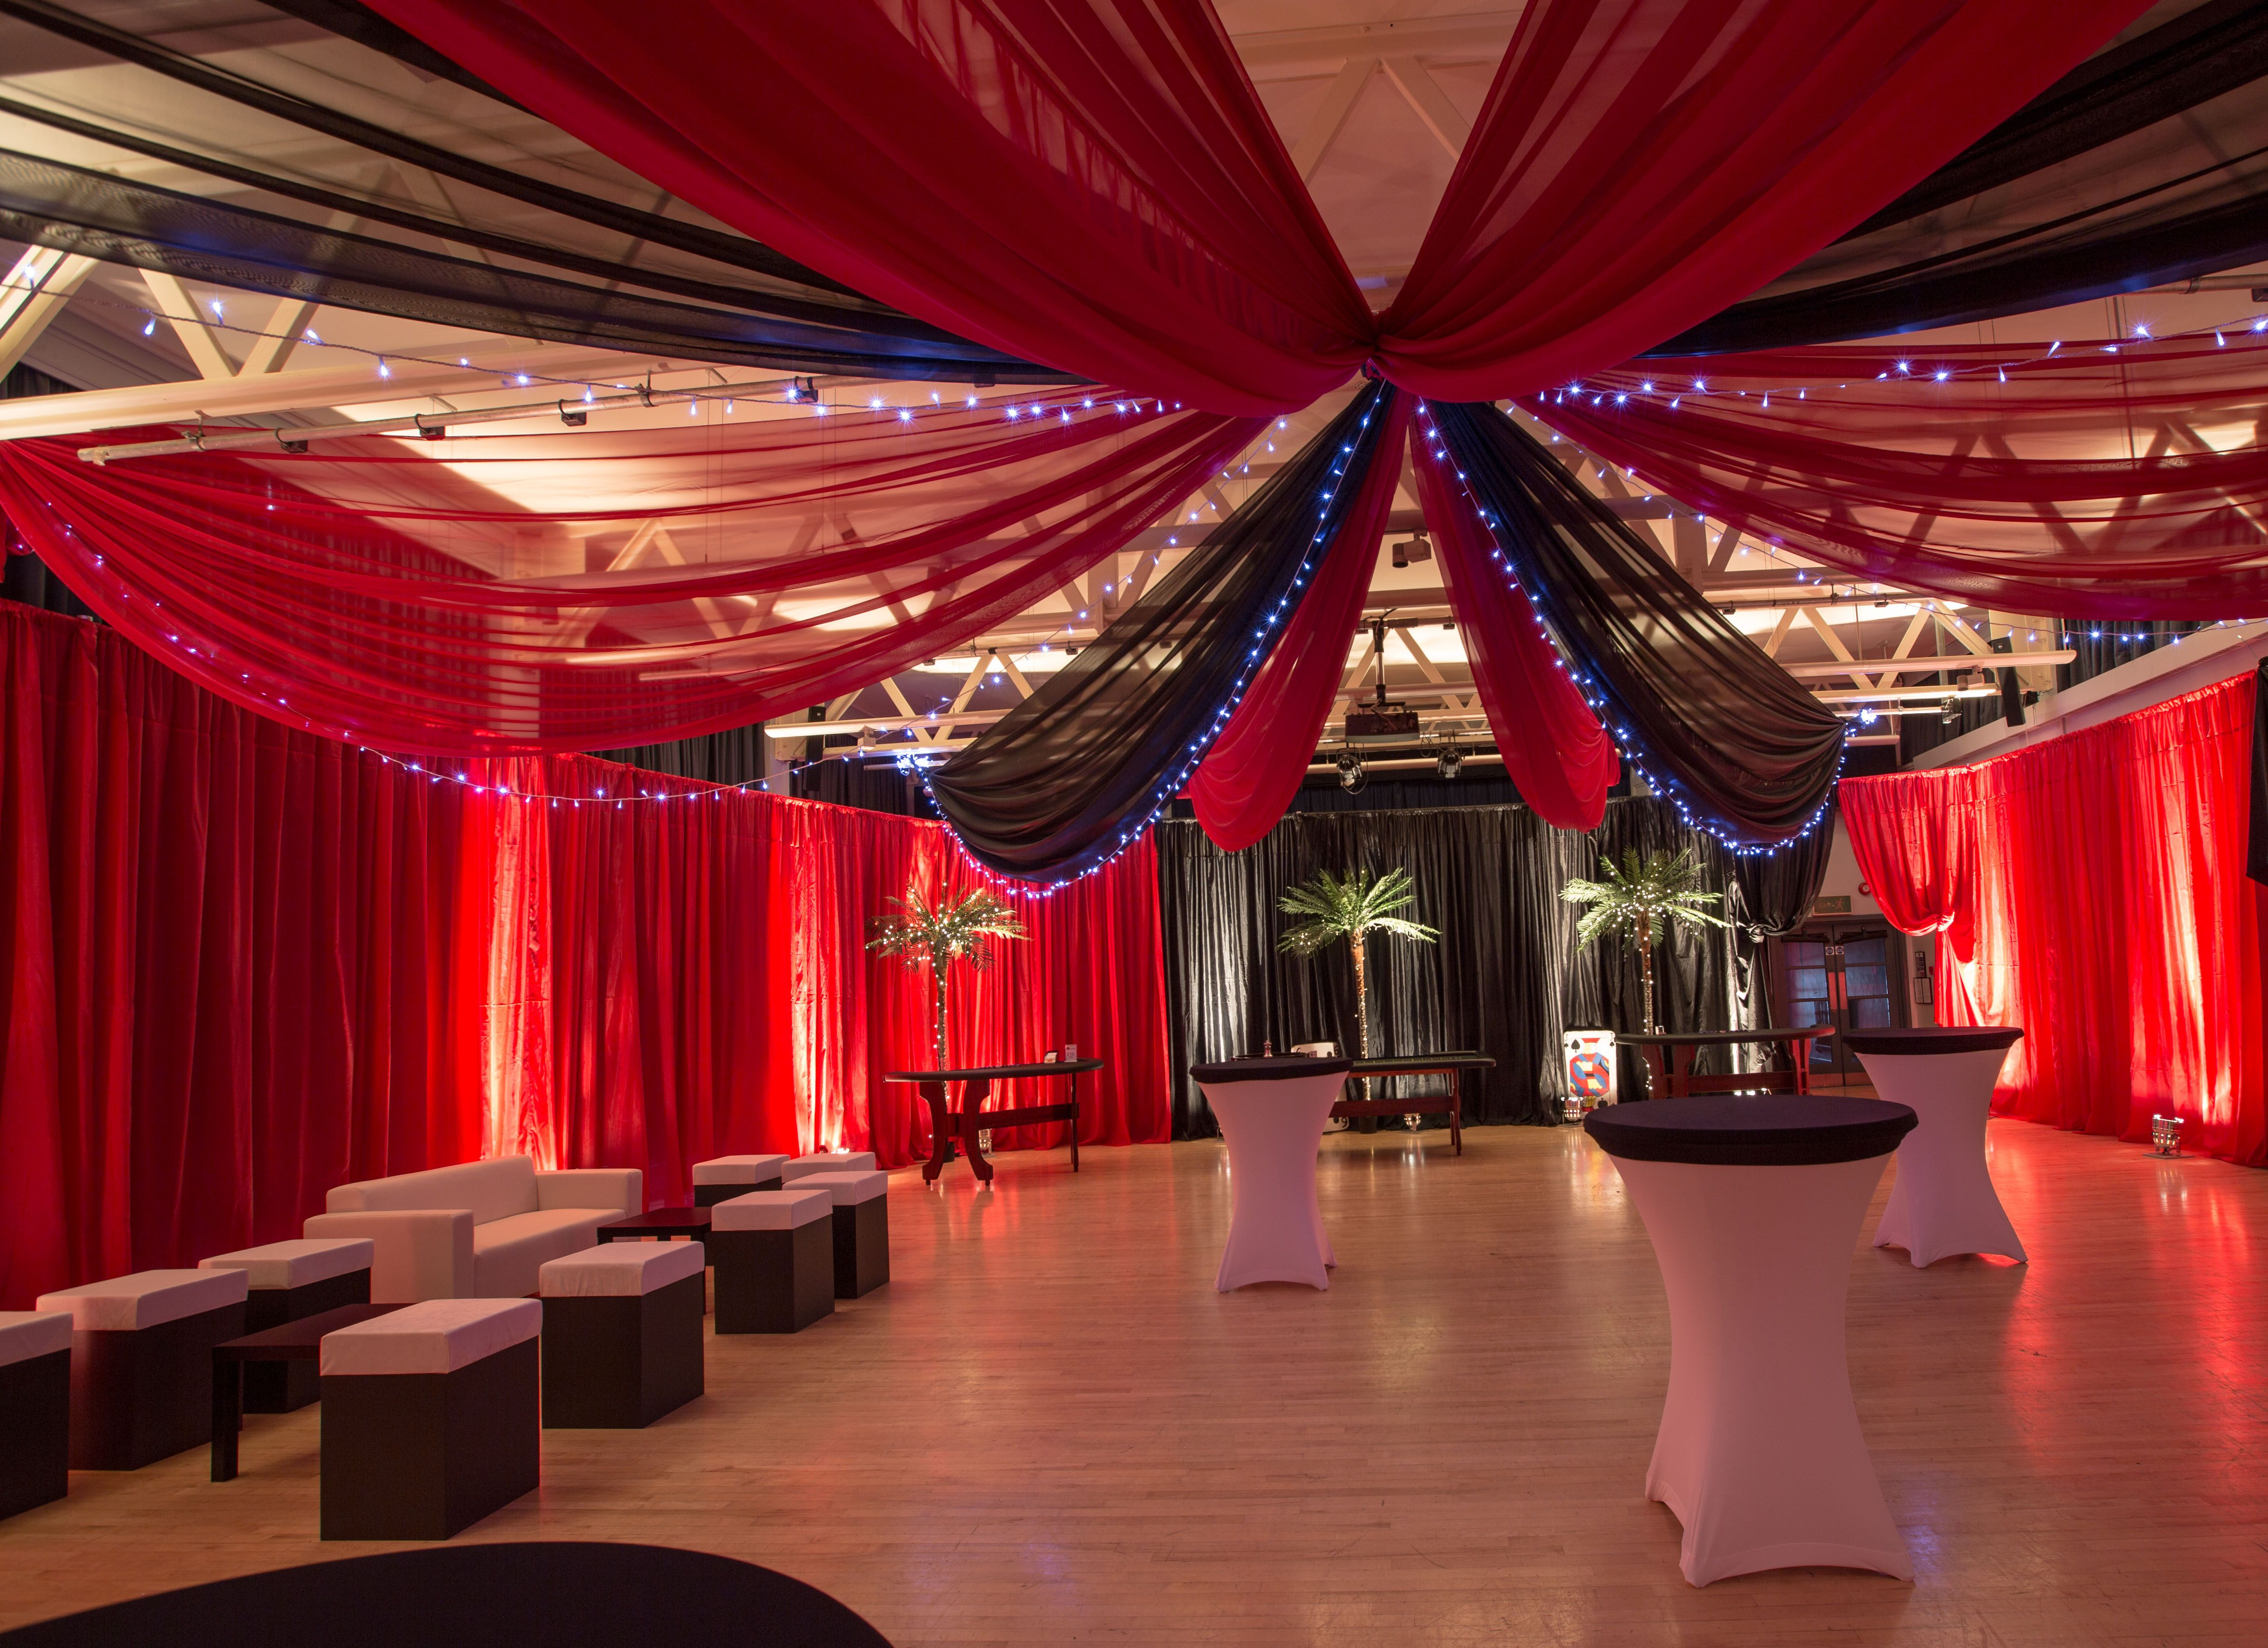 Hollywood casino party room